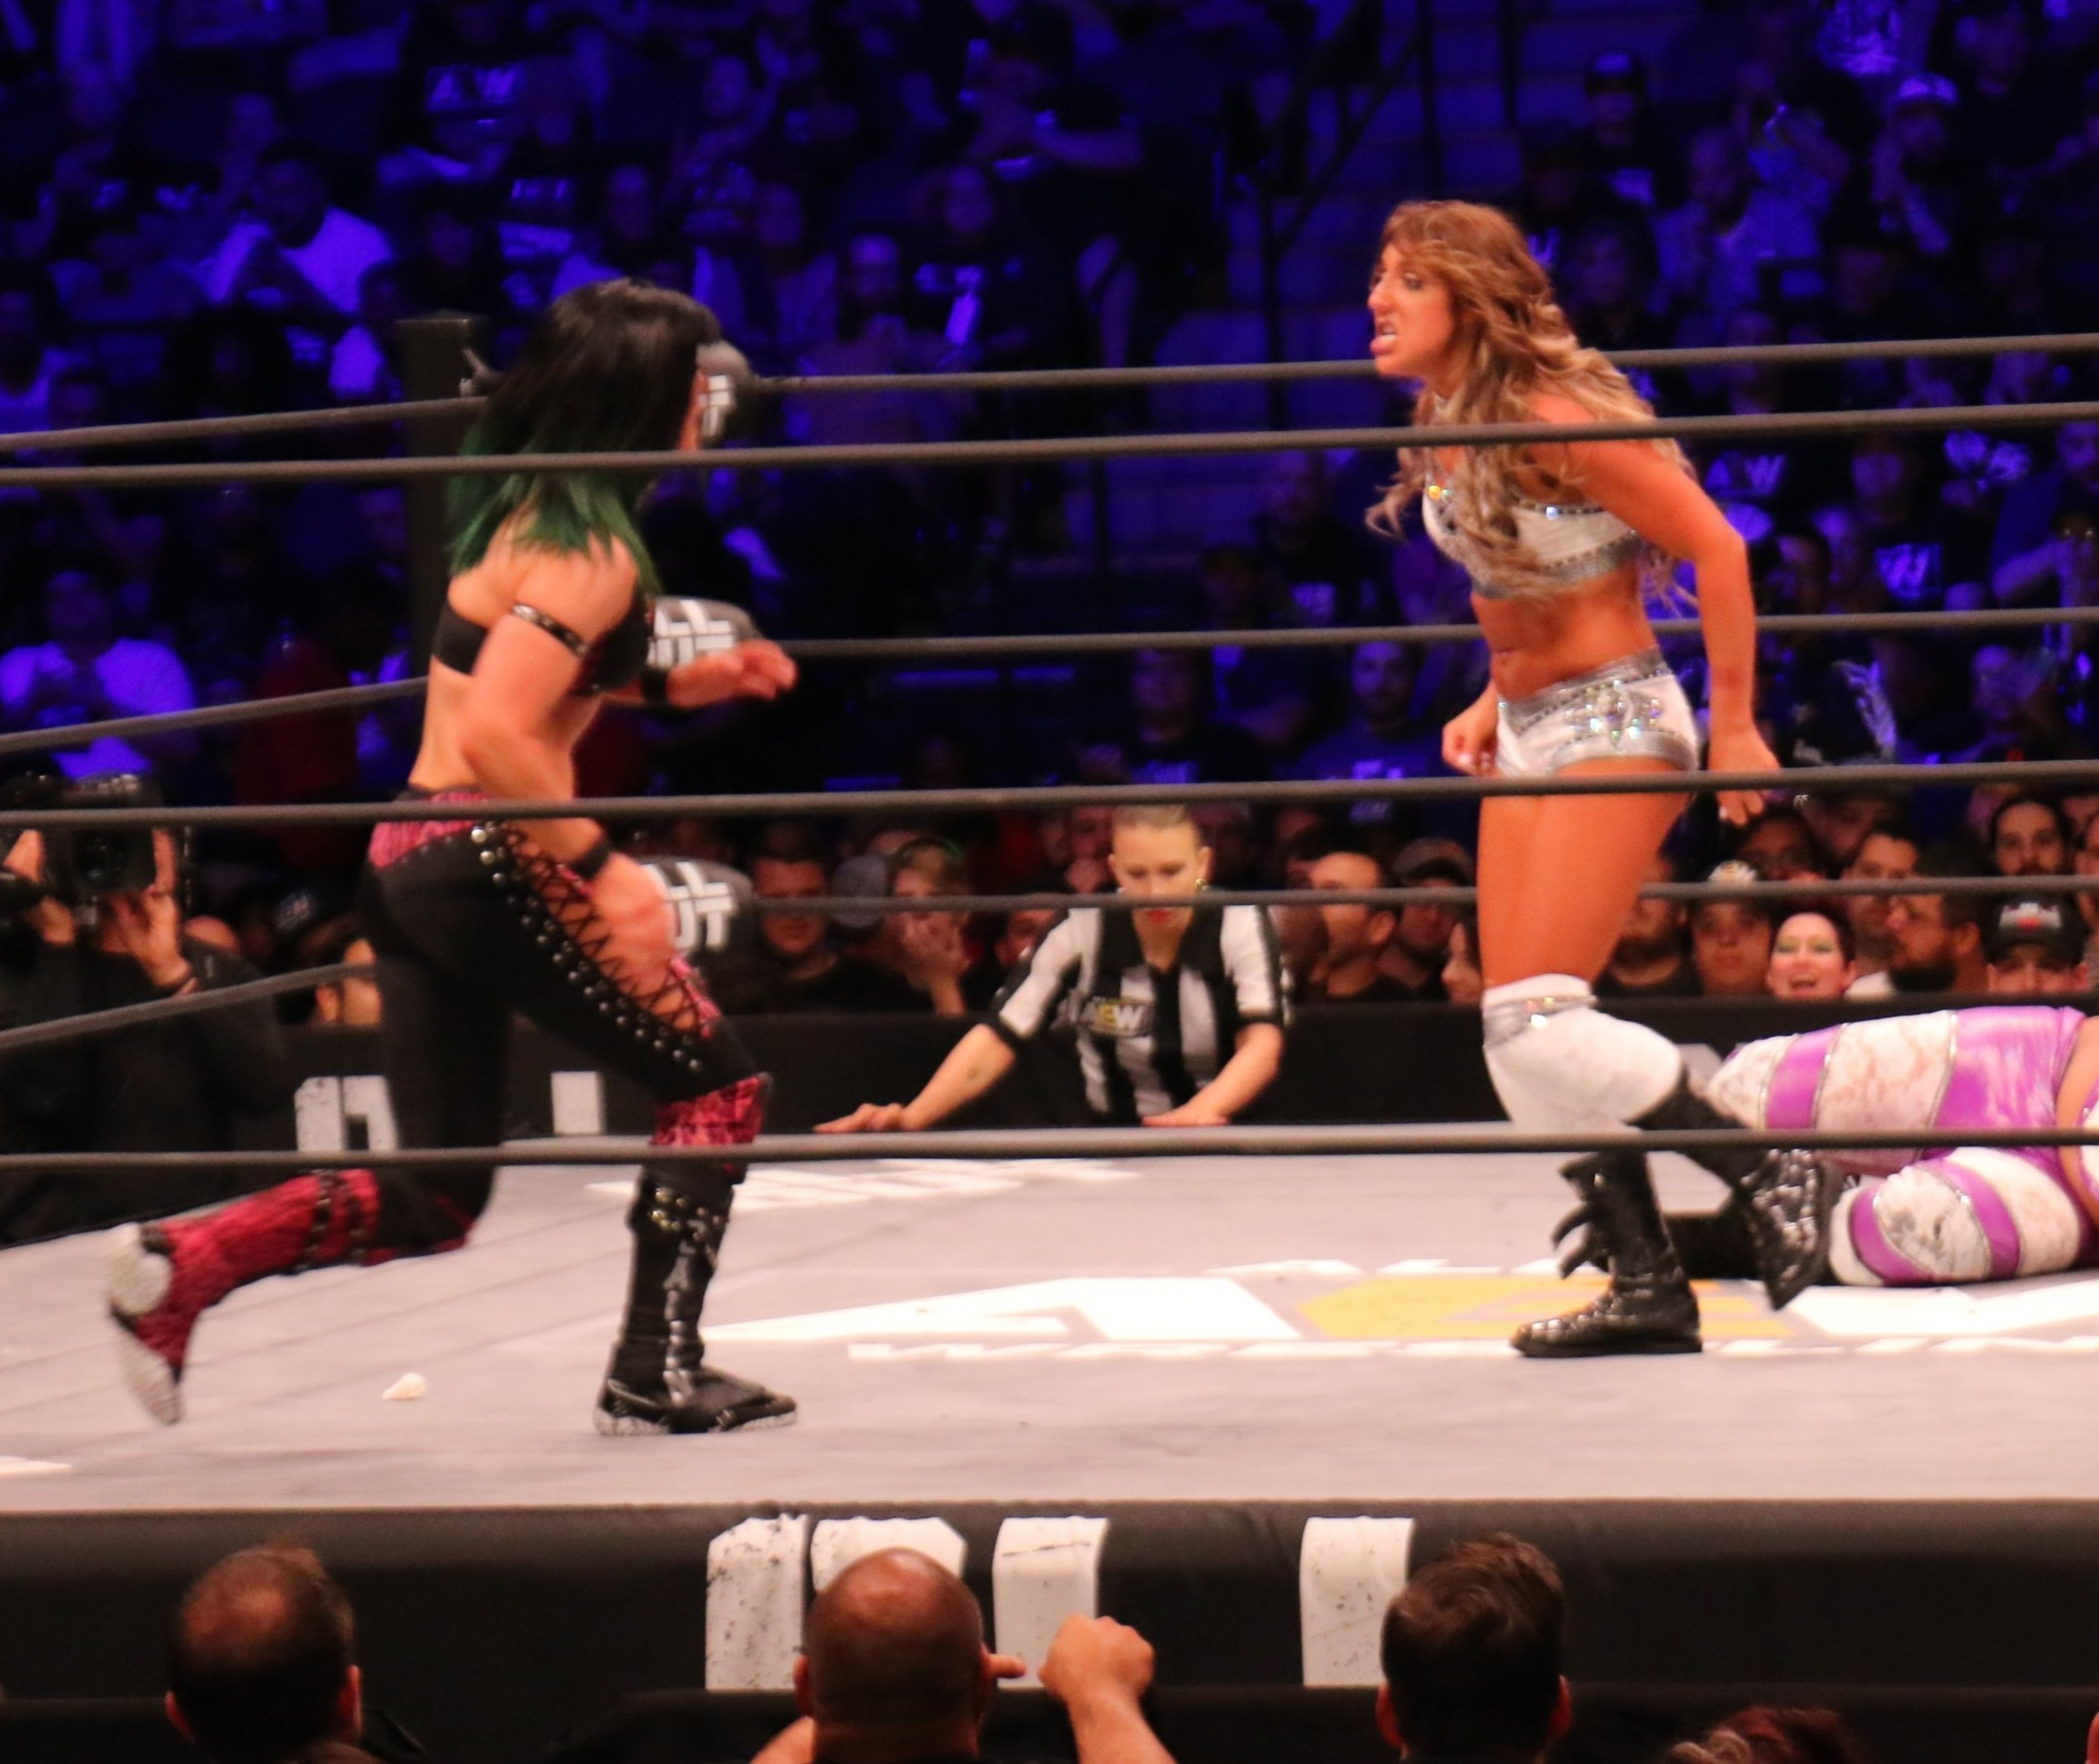 Britt Baker, right, faces off against Bea Priestley during the Casino Battle Royale at AEW's All Out on Saturday, Aug. 31 at Sears Centre in Hoffman Estates  (Photo by Mike Pankow)